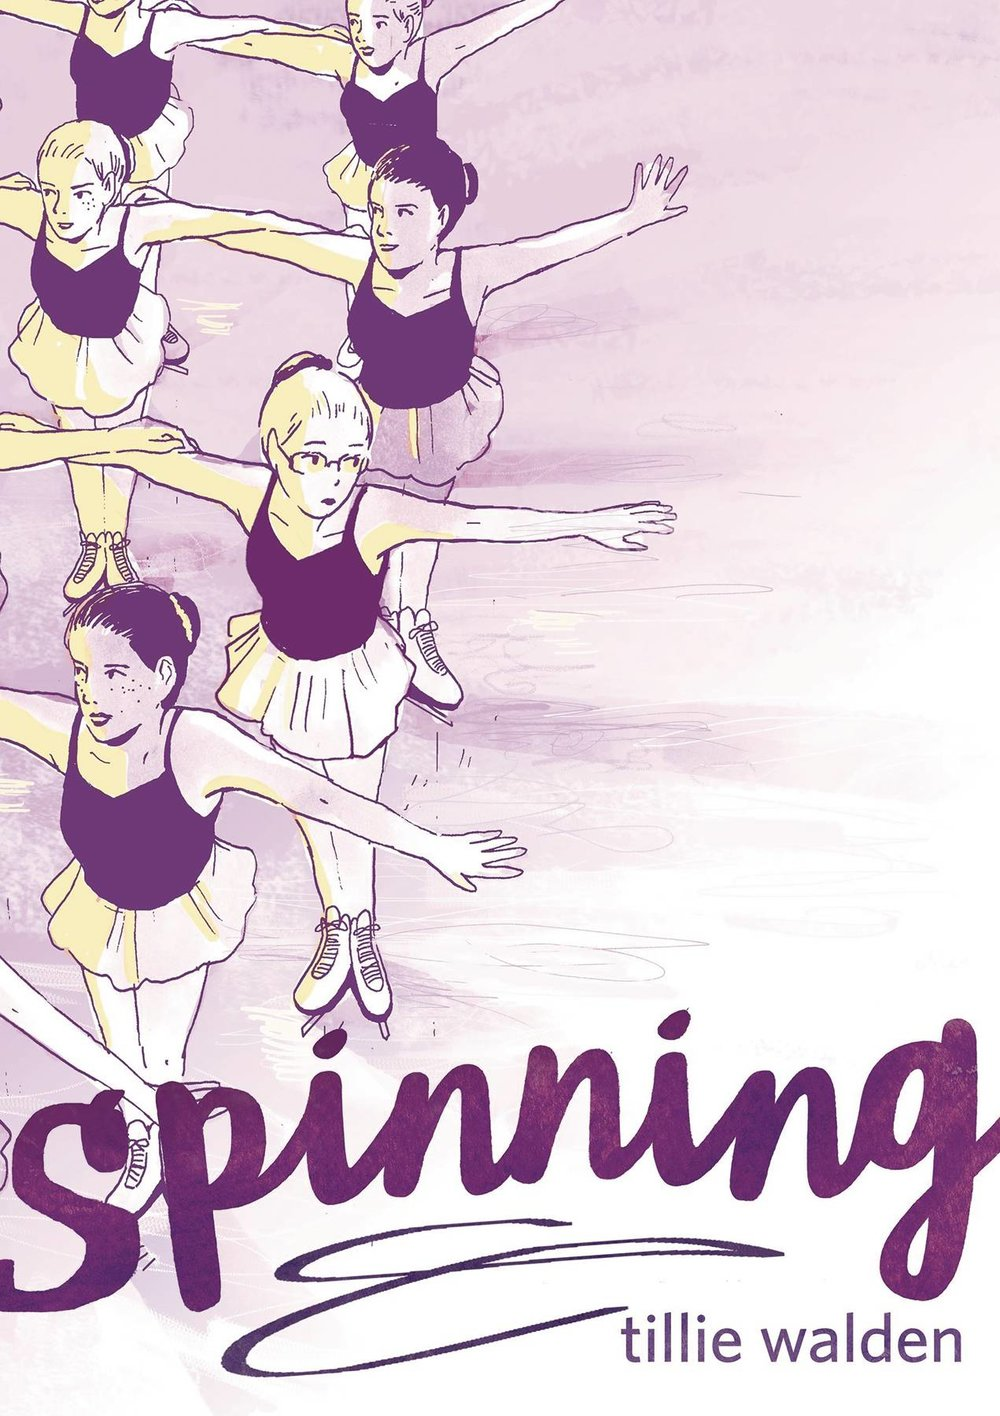 Spinning GN - Lauren's PickCarry on your Olympic spirit with this graphic memoir! Cartoonist Tillie Walden (The End of Summer) spent much of her adolescence as a competitive figure skater, a period of life she chronicles in Spinning. Though she once appreciated the strict discipline and structure of skating, over the course of the story her developing individuality begins to put our narrator at odds with the narrow mold of femininity intrinsically tied to her world. Through the lens of her ever-more-complicated relationship with the sport, Walden takes readers on a journey into the complications of life as a young girl being pulled in a million different directions.